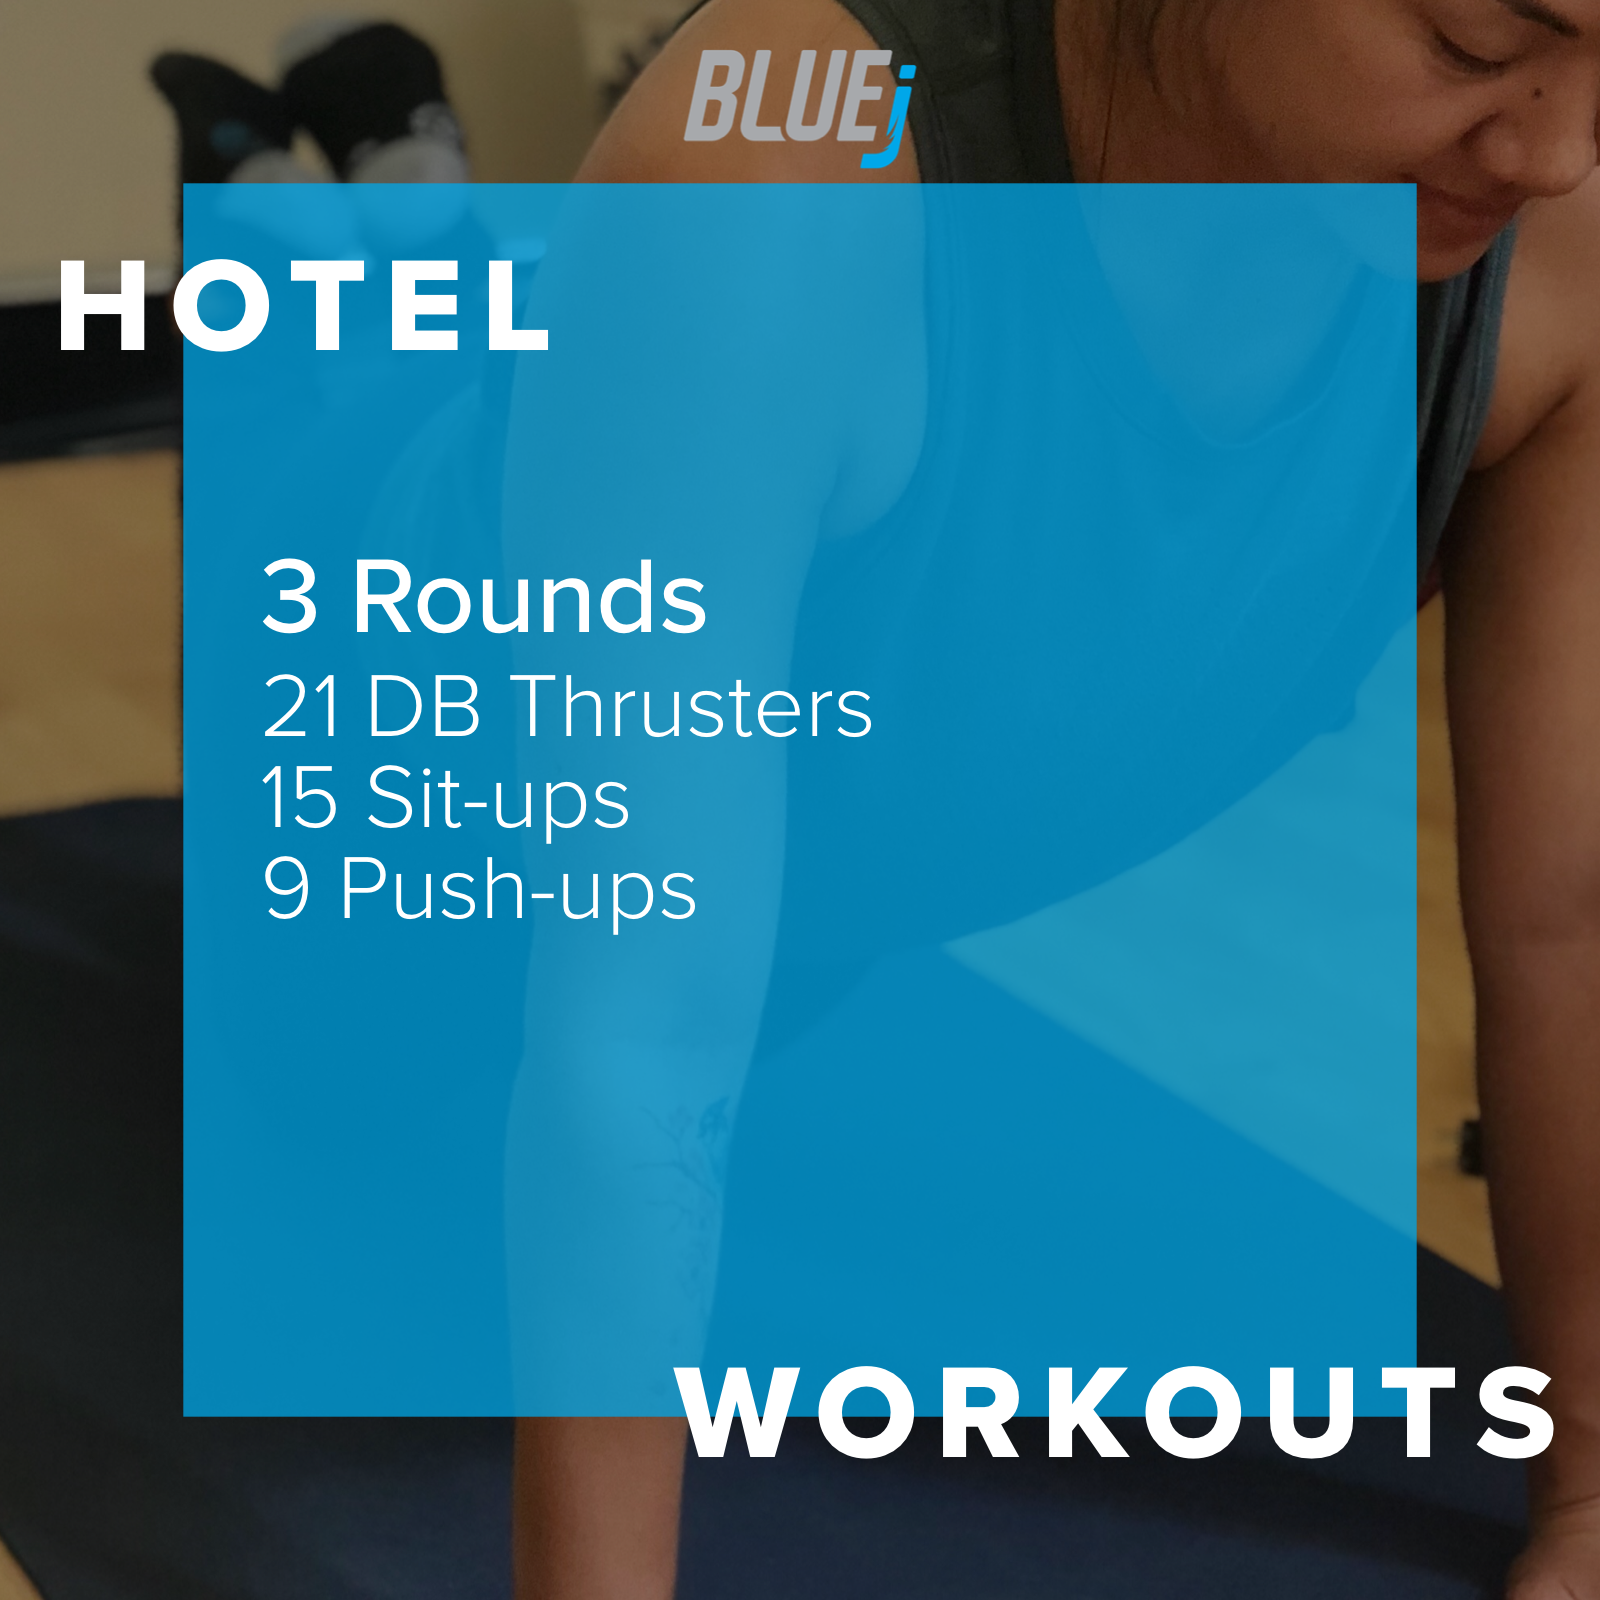 Hotel Workout 8:12.PNG